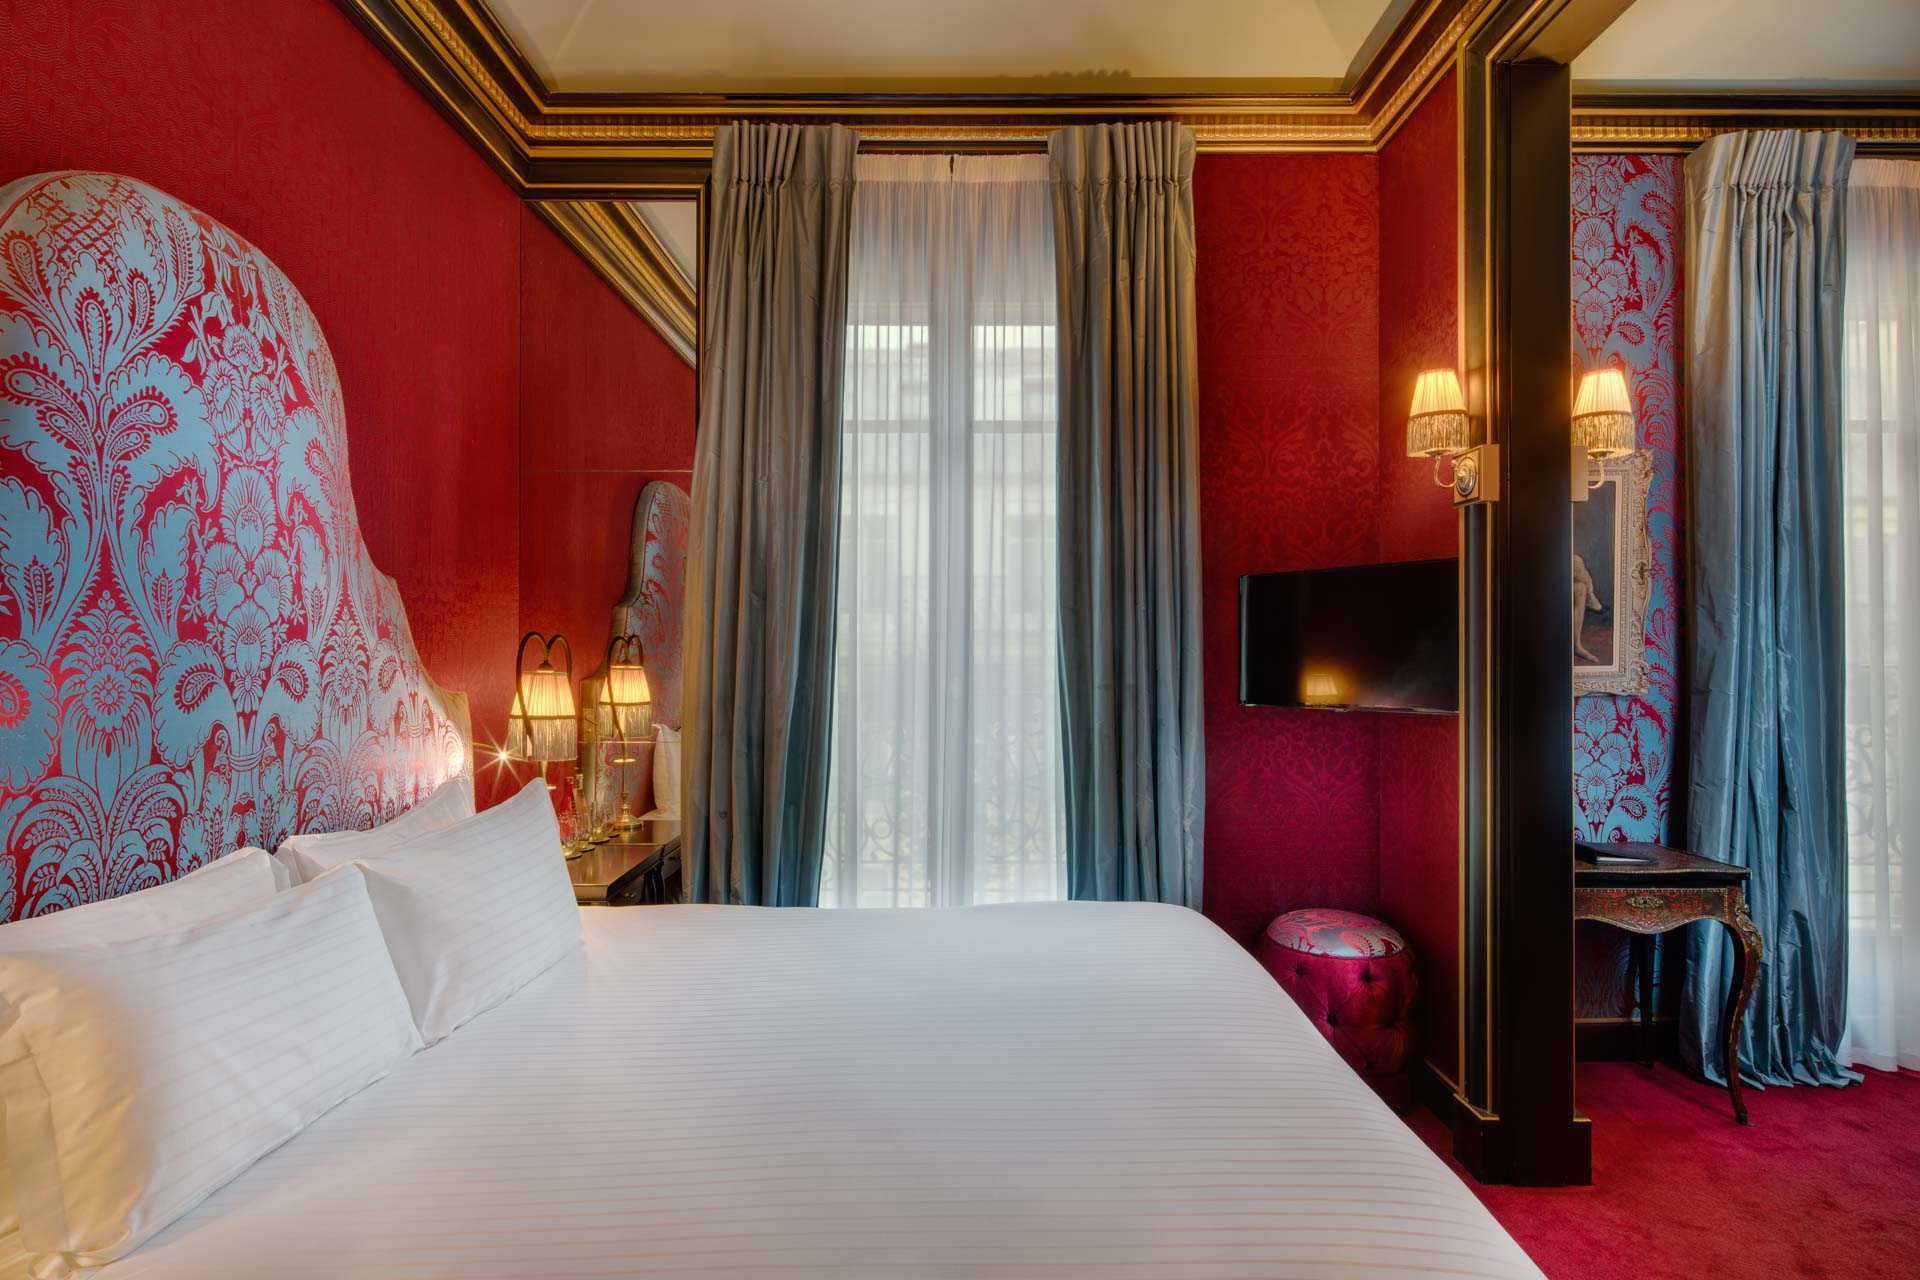 View on deluxe room of luxury boutique Hotel Maison Souquet